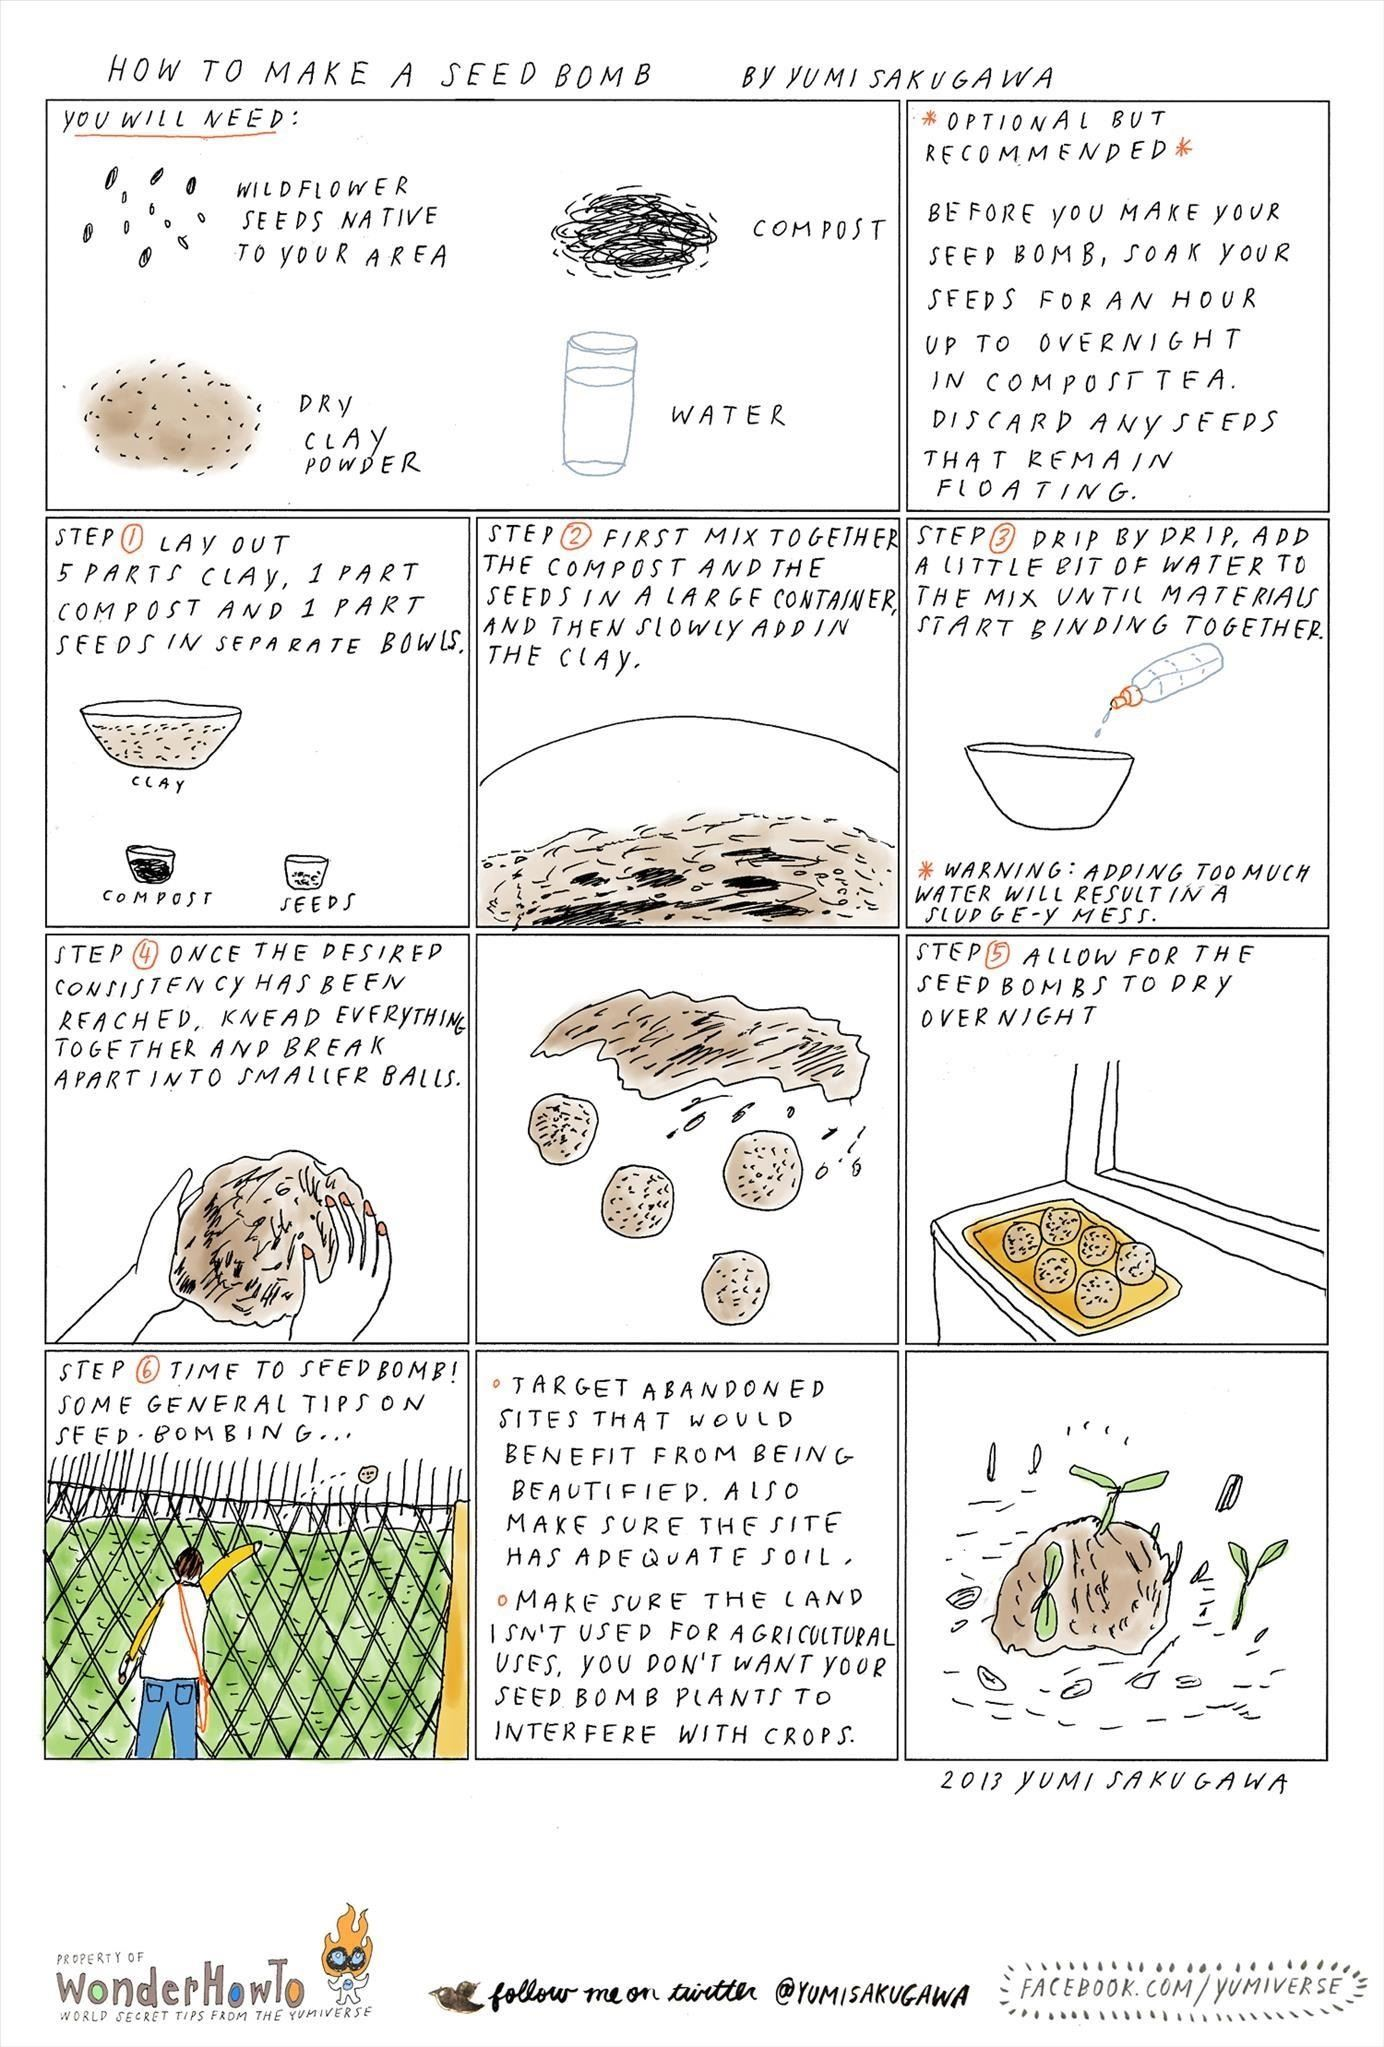 Guerrilla Gardening 101: How to Make a Seed Bomb